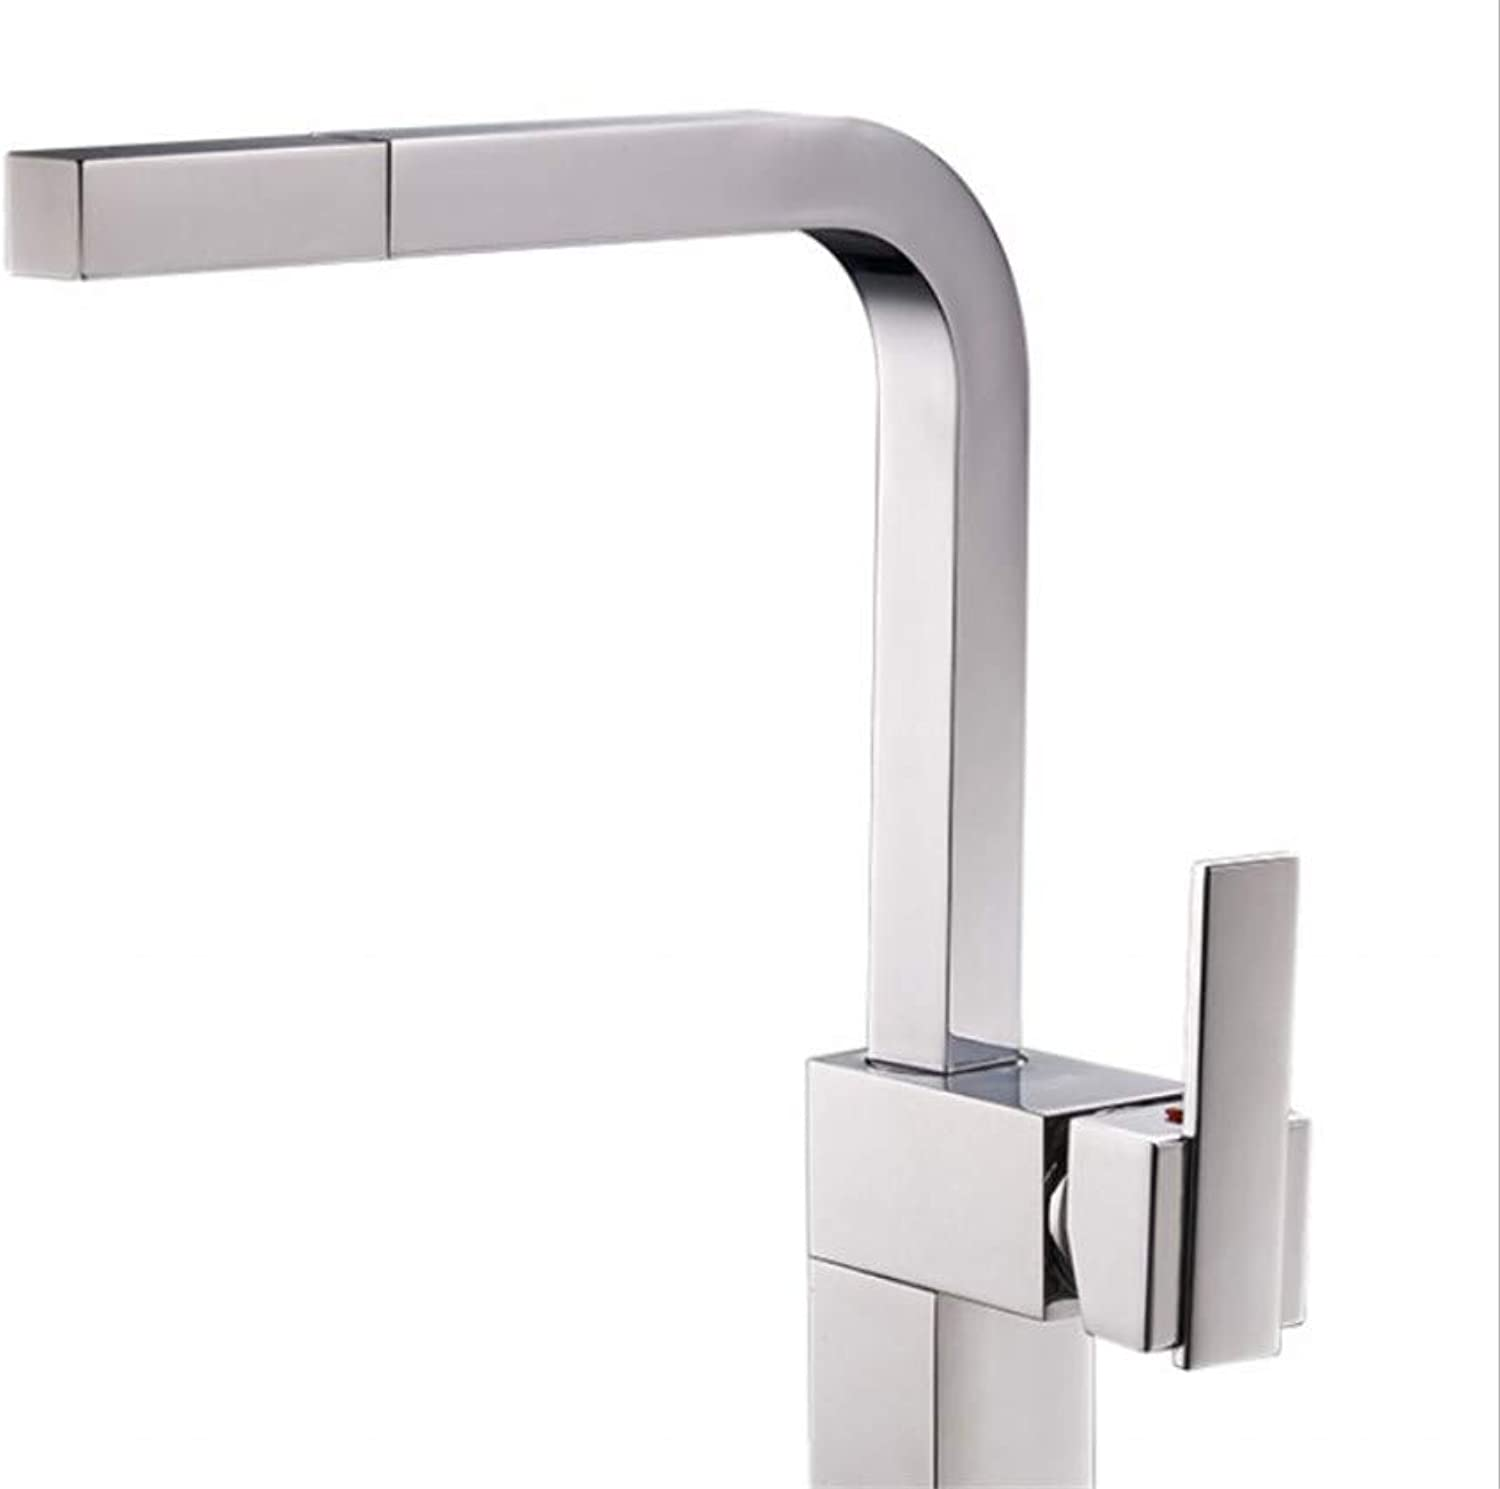 Kitchen Sink Taps Bathroom Taps All Copper Kitchen Faucets Pull Hot and Cold Wash Basin Pots, Water Faucets Can Be redated.